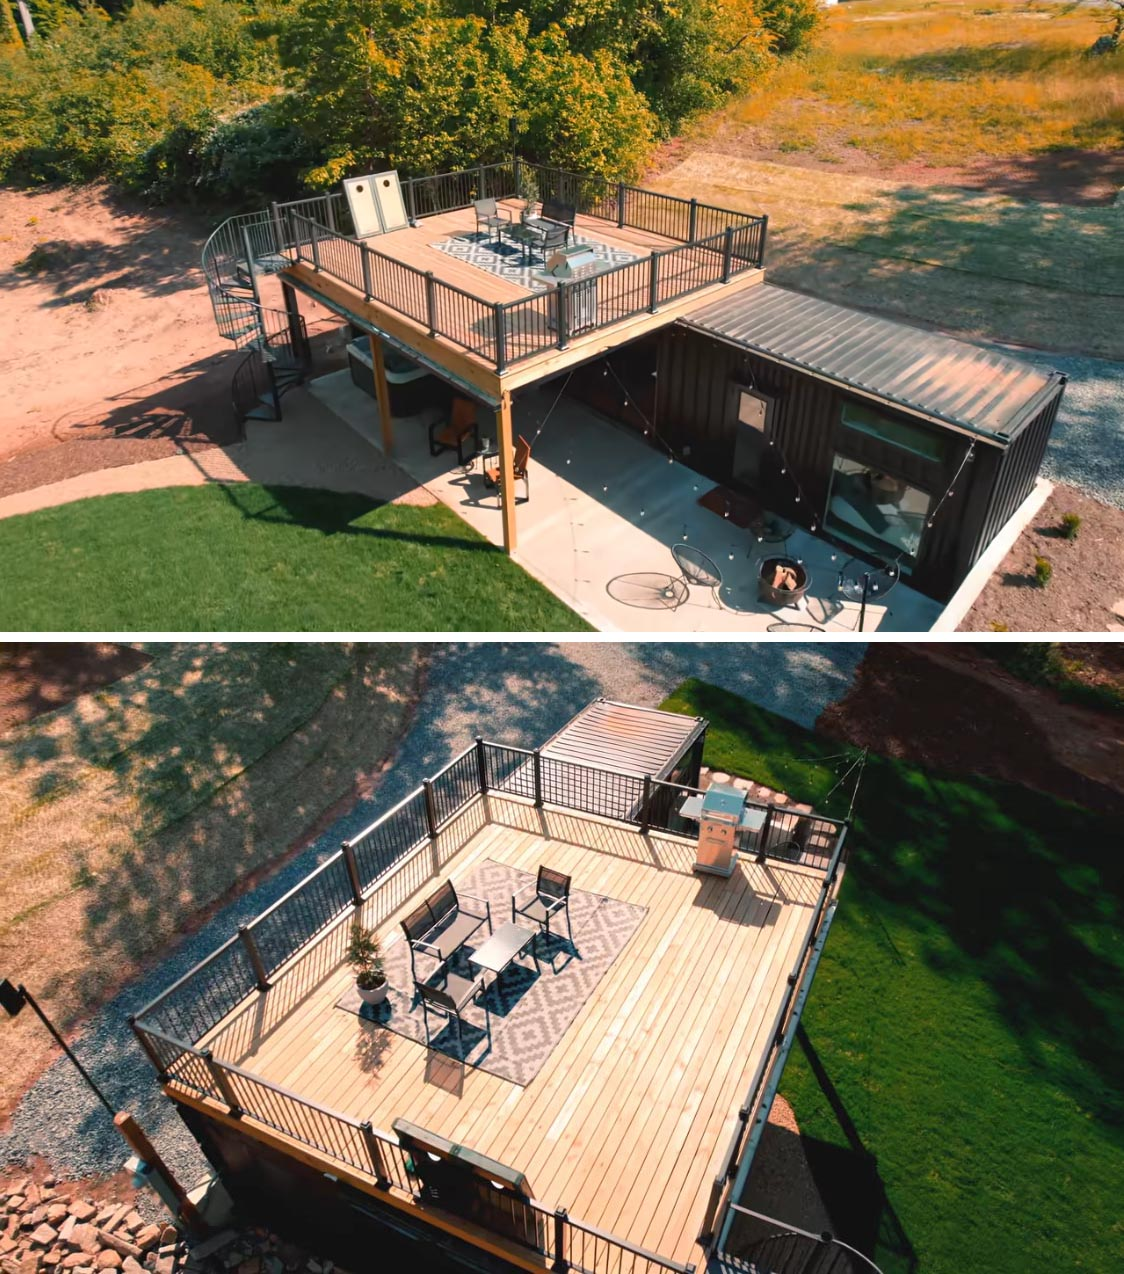 A shipping container tiny home with a black exterior, rooftop deck, outdoor entertaining space, and a modern interior.